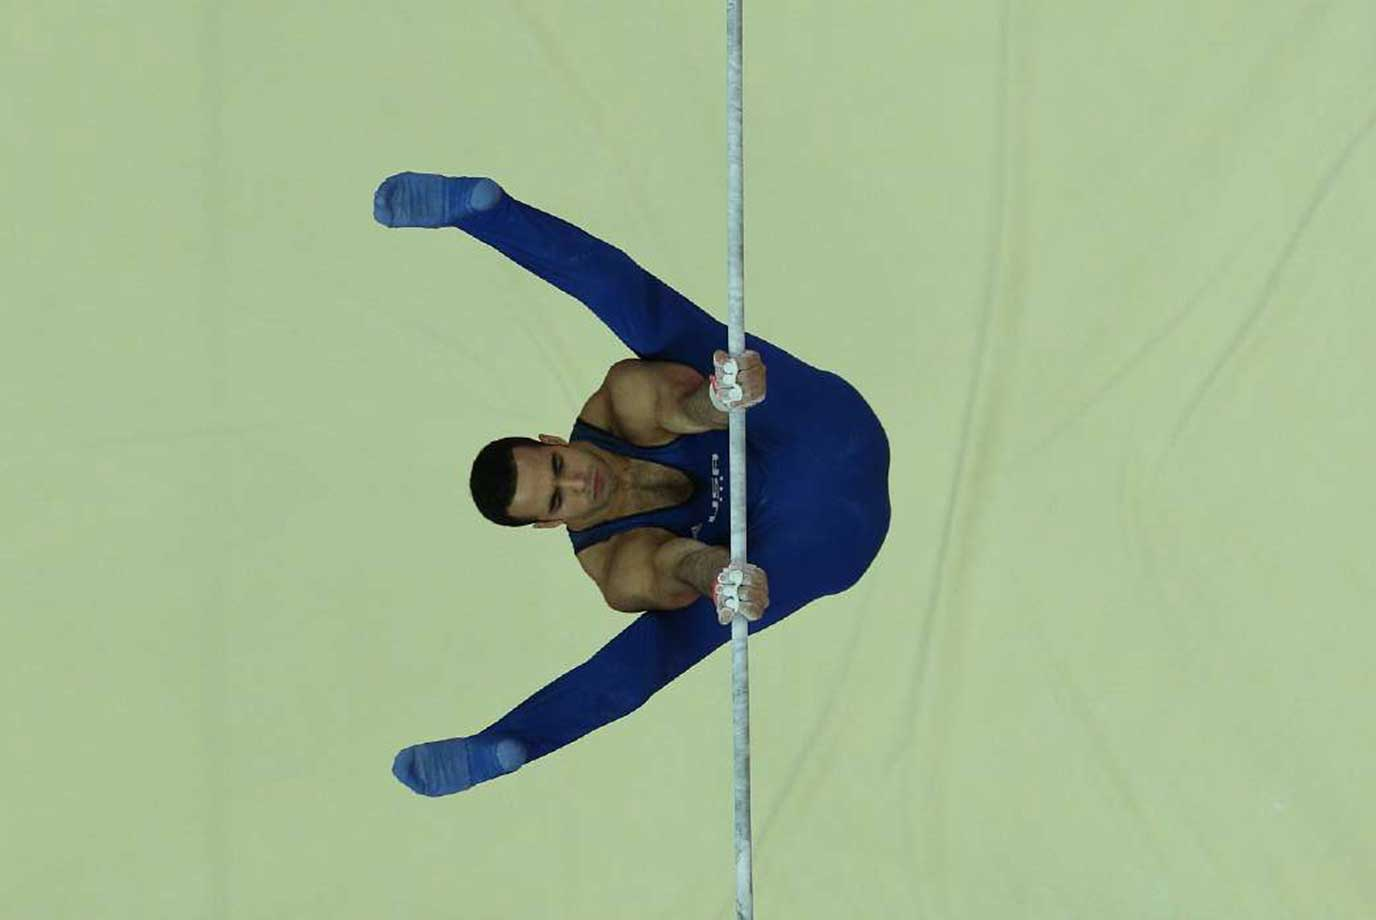 Action in the men's individual All-Around final at the London 2012 Summer Olympic Games.